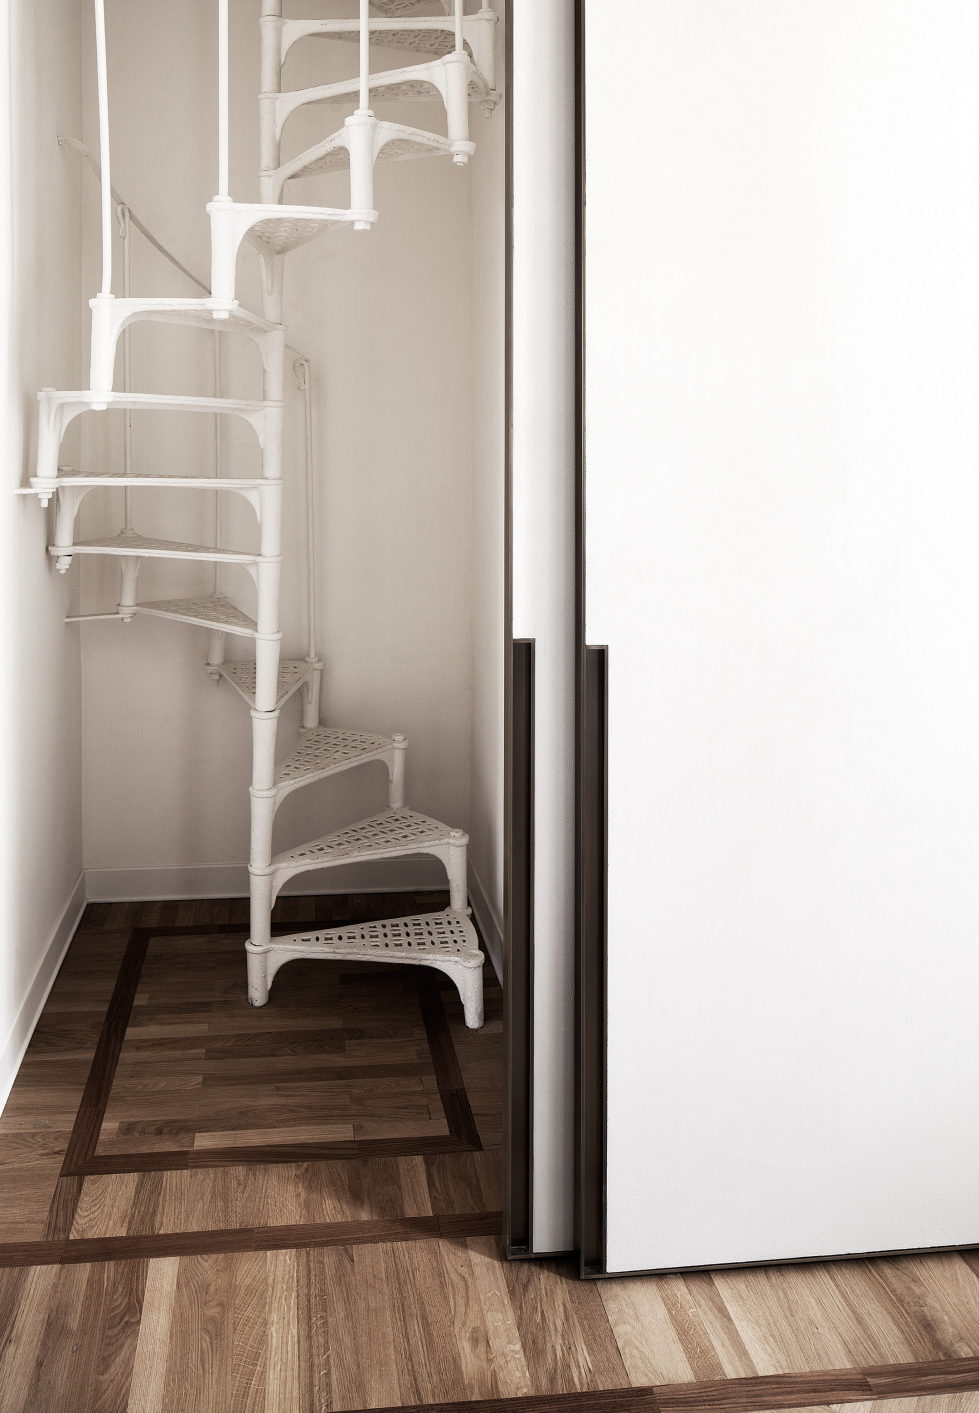 Casa Roma Minimalism And Plenty Of Light In Rome 8